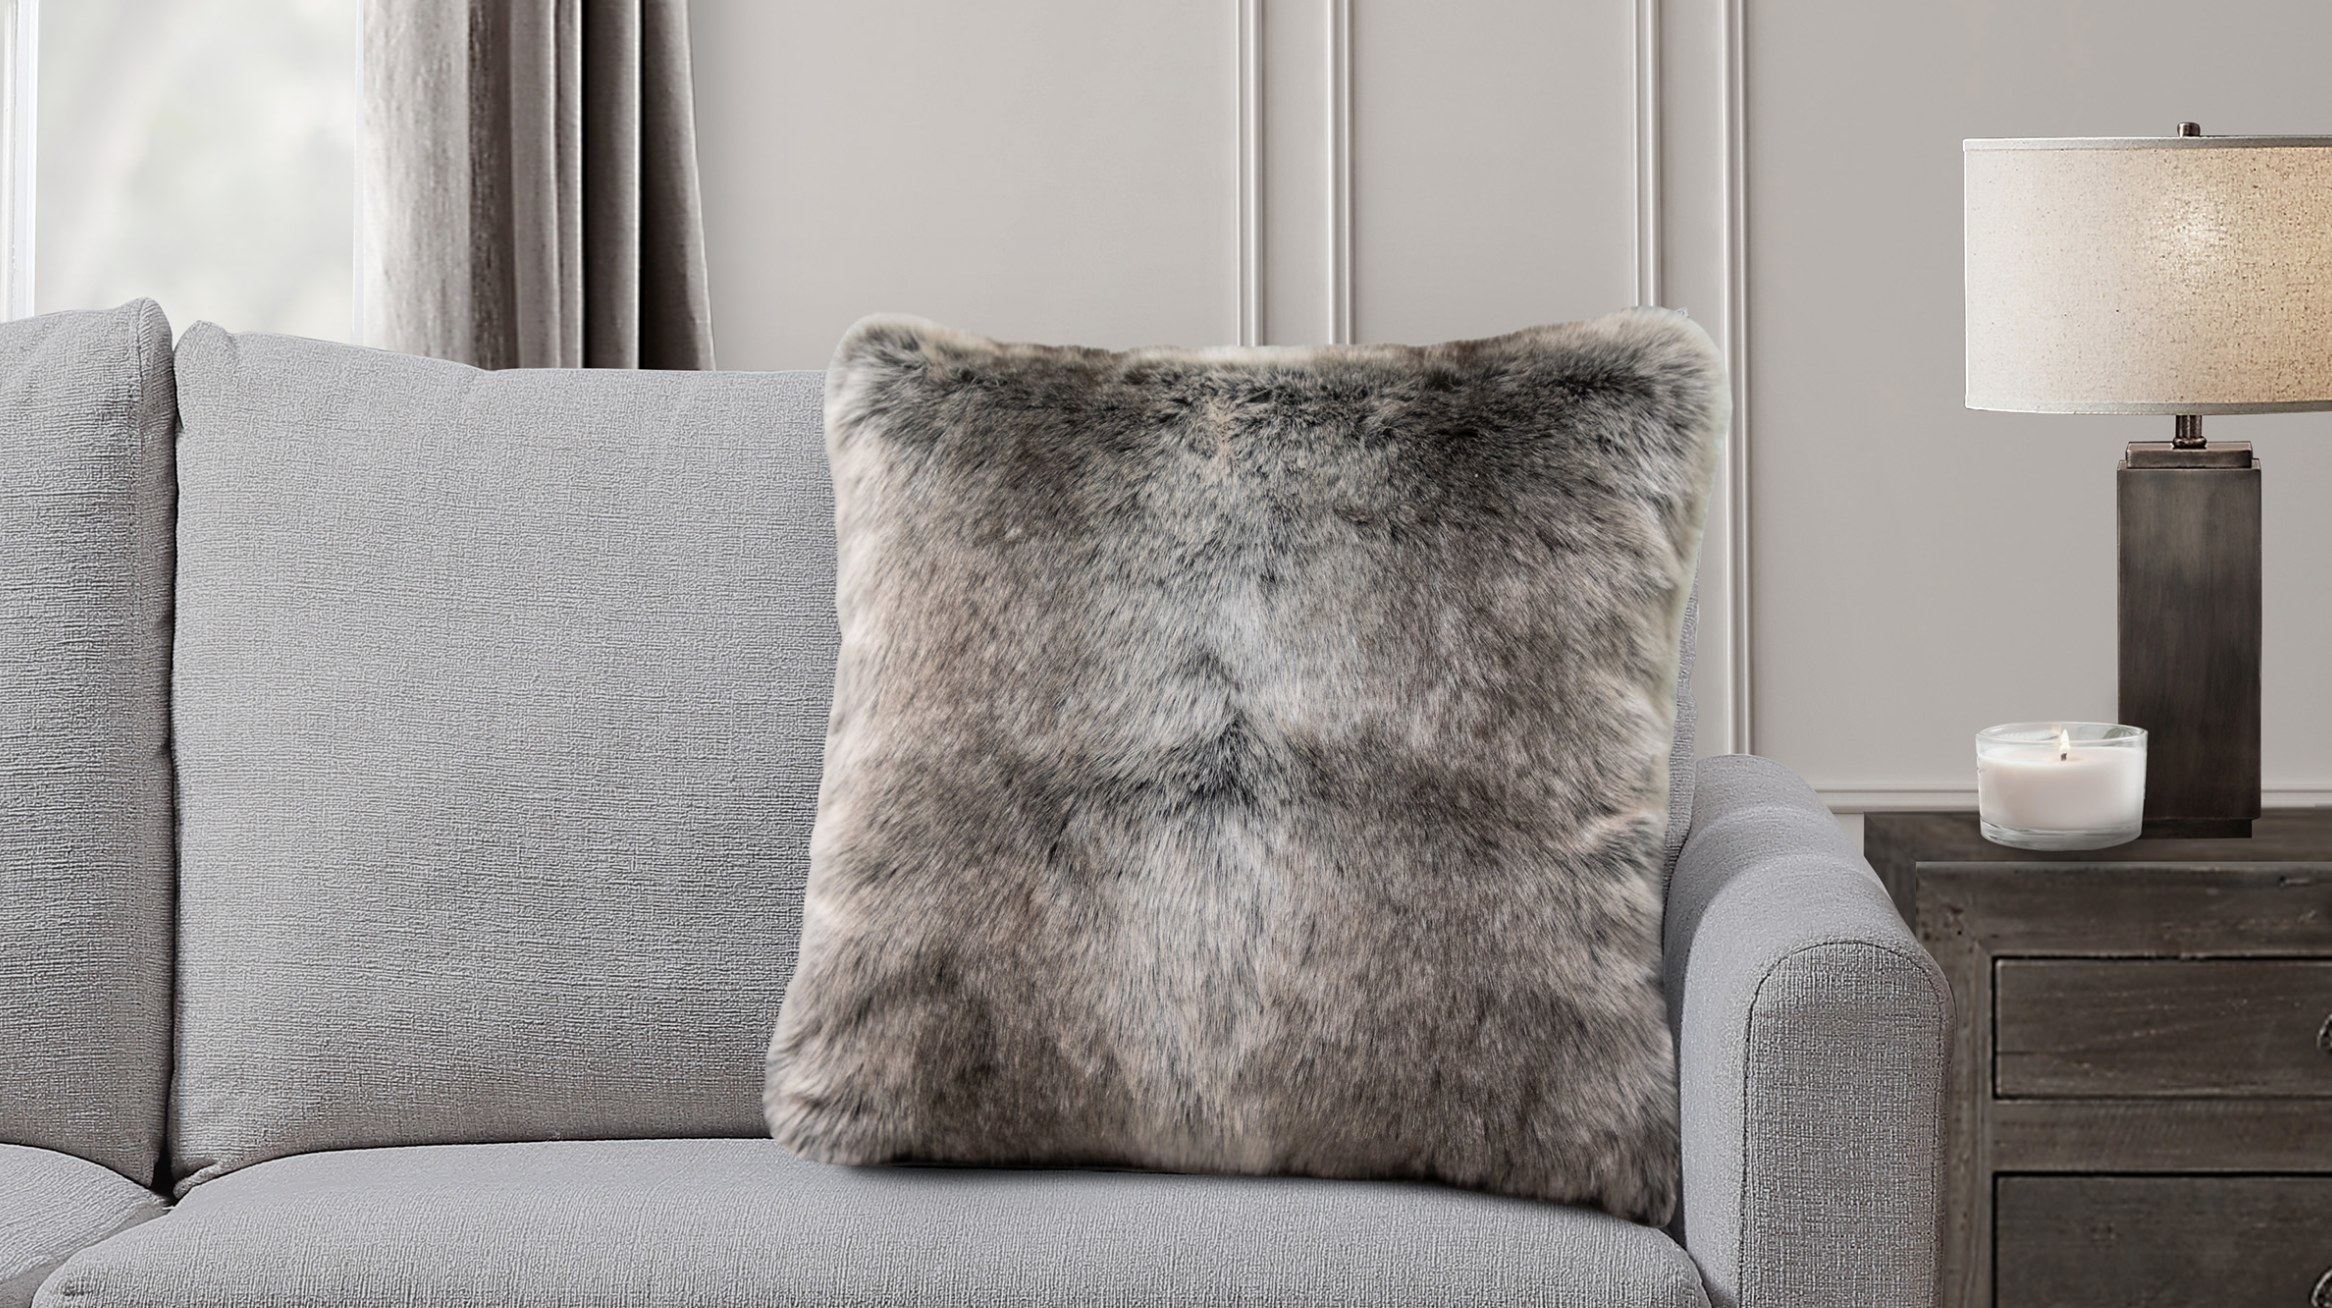 The pillow on a grey couch